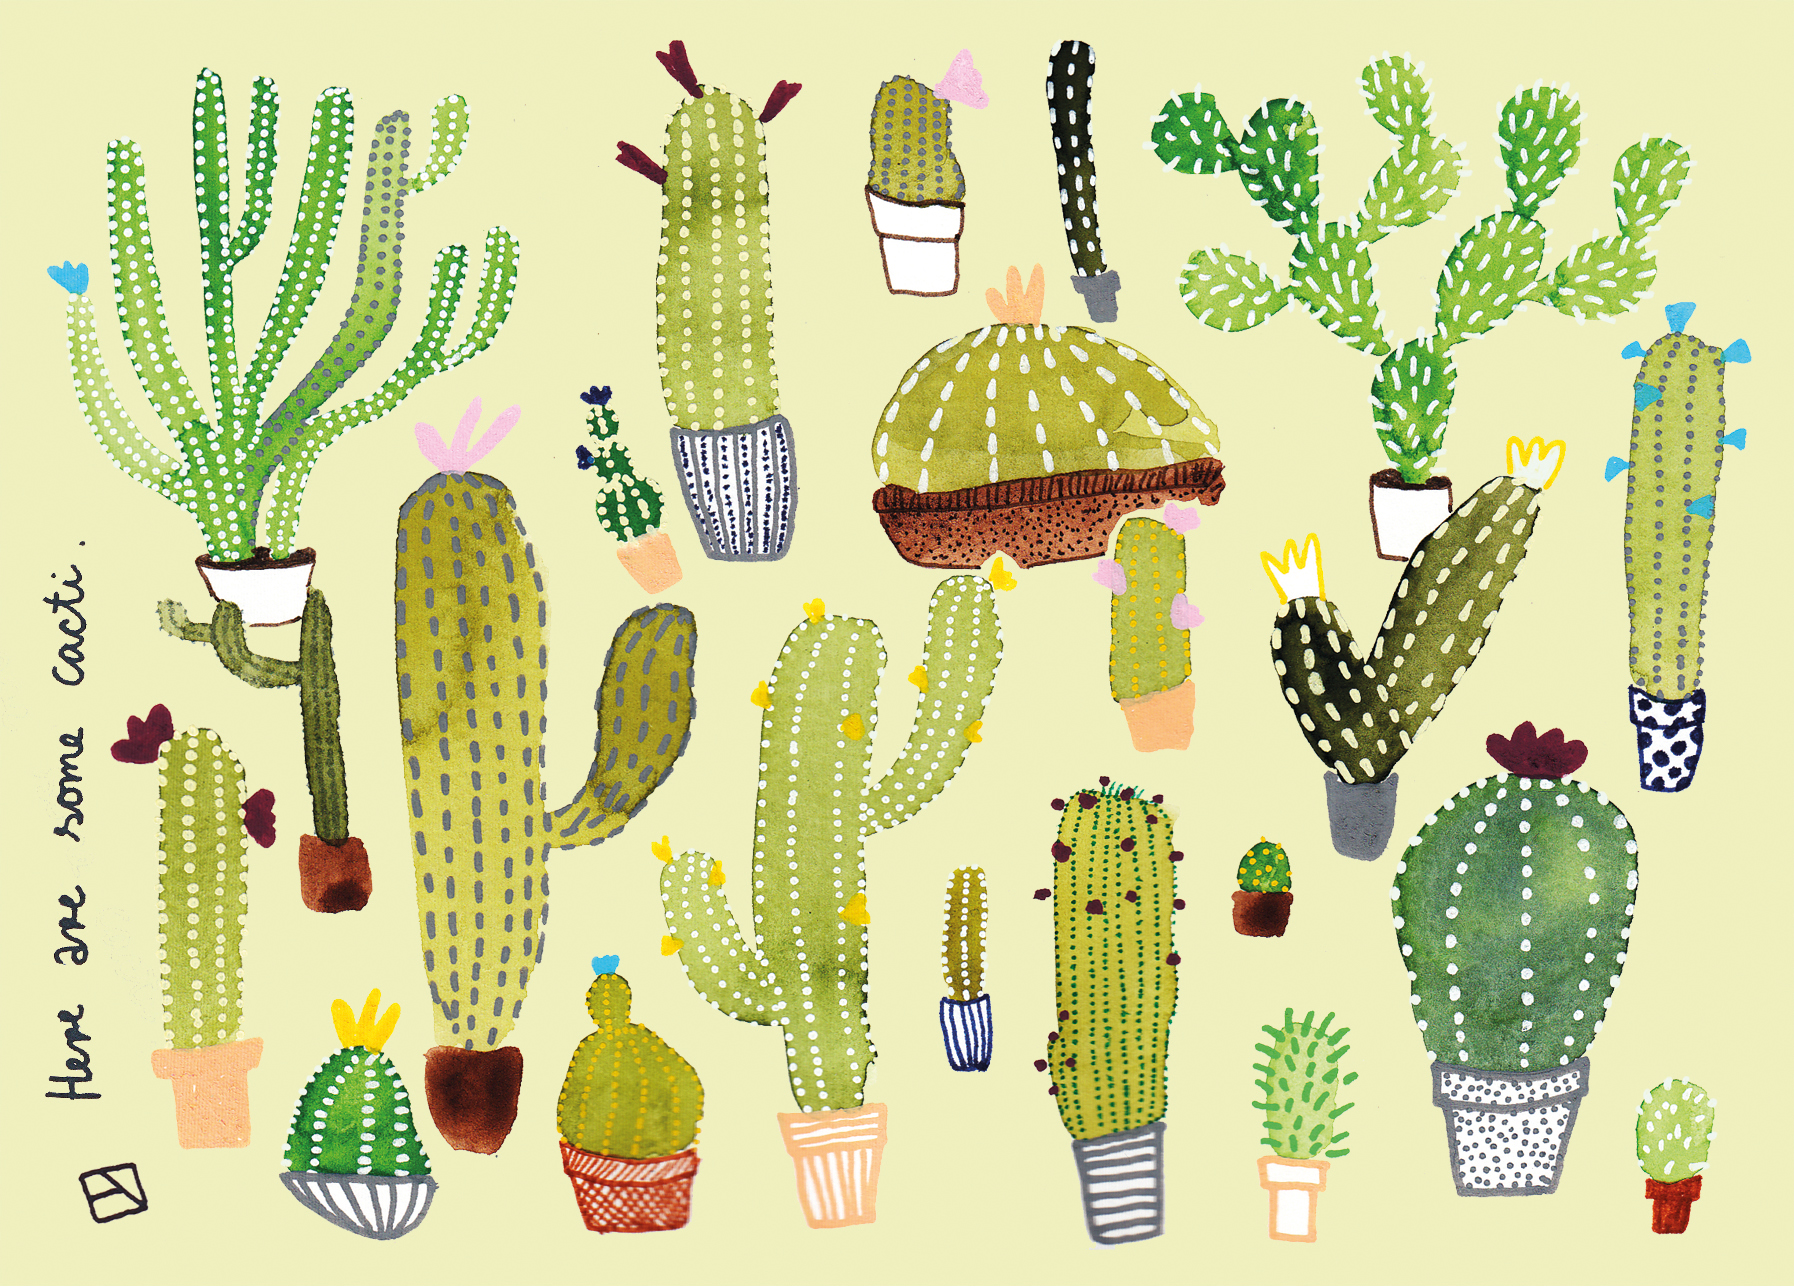 Here are some cacti.